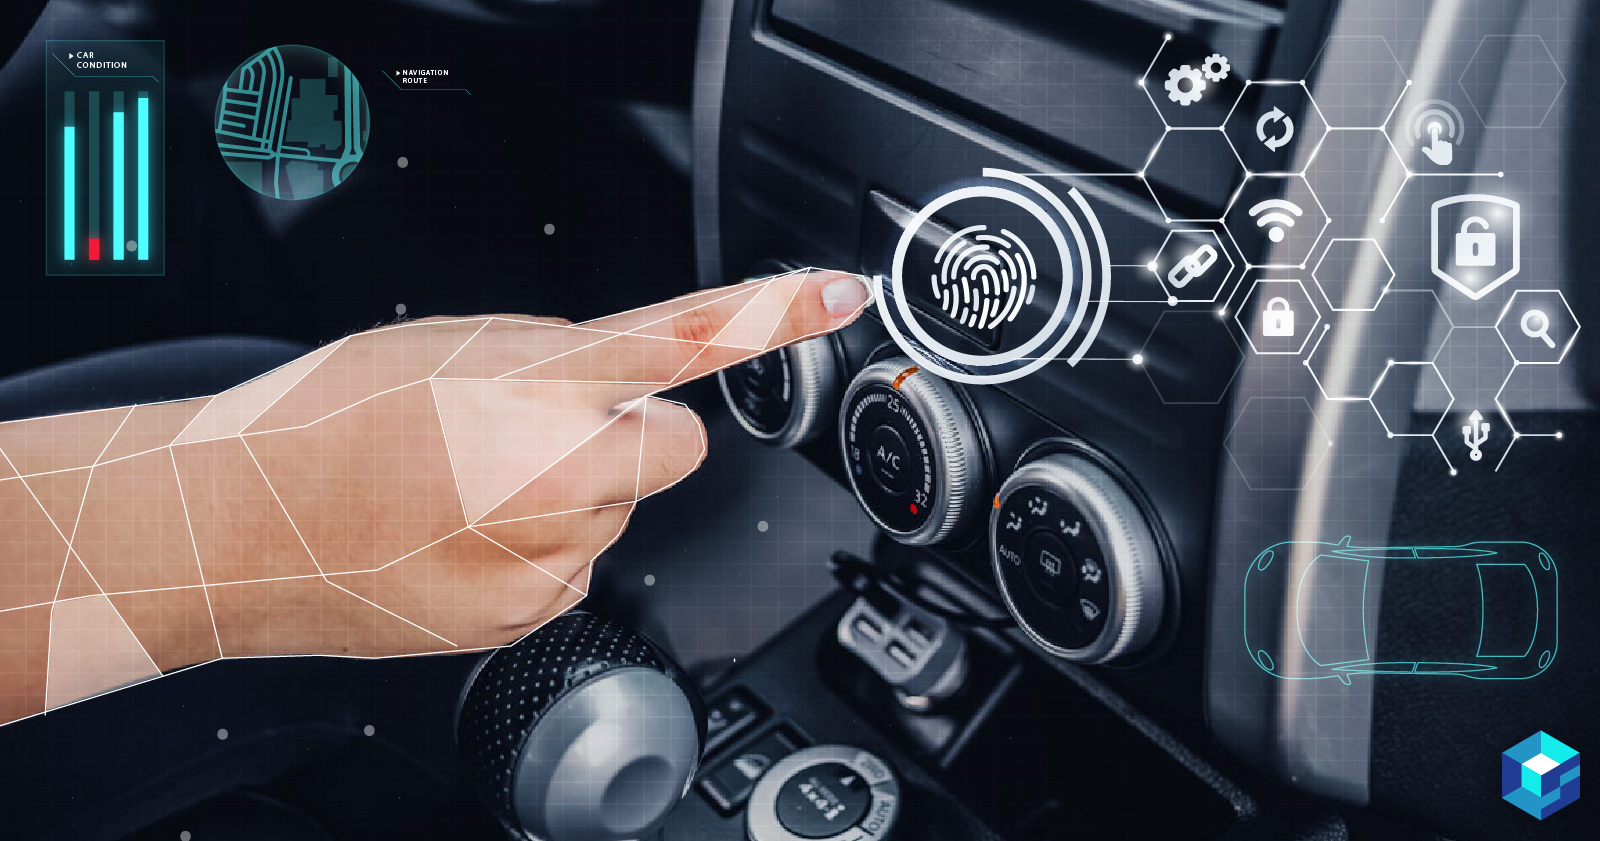 Hand pointing at automobile infotainment system; MIcrochip's tracking and gesture controller is perfect for modern automobile cockpit technology.